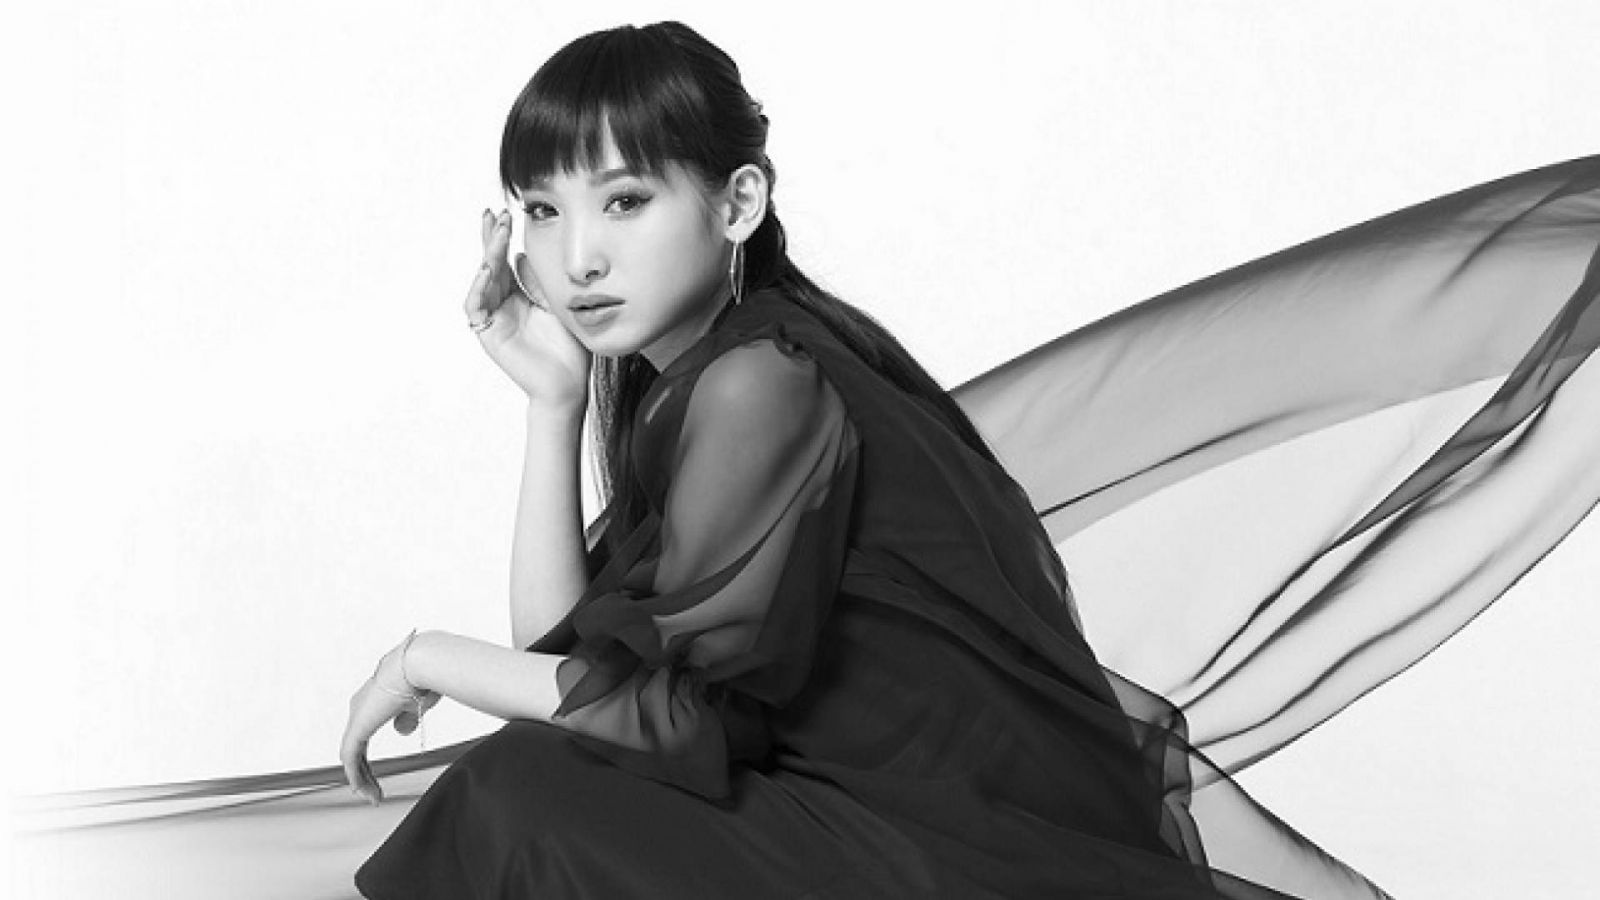 Yoshino Nanjo © NBCUniversal Entertainment. All rights reserved.